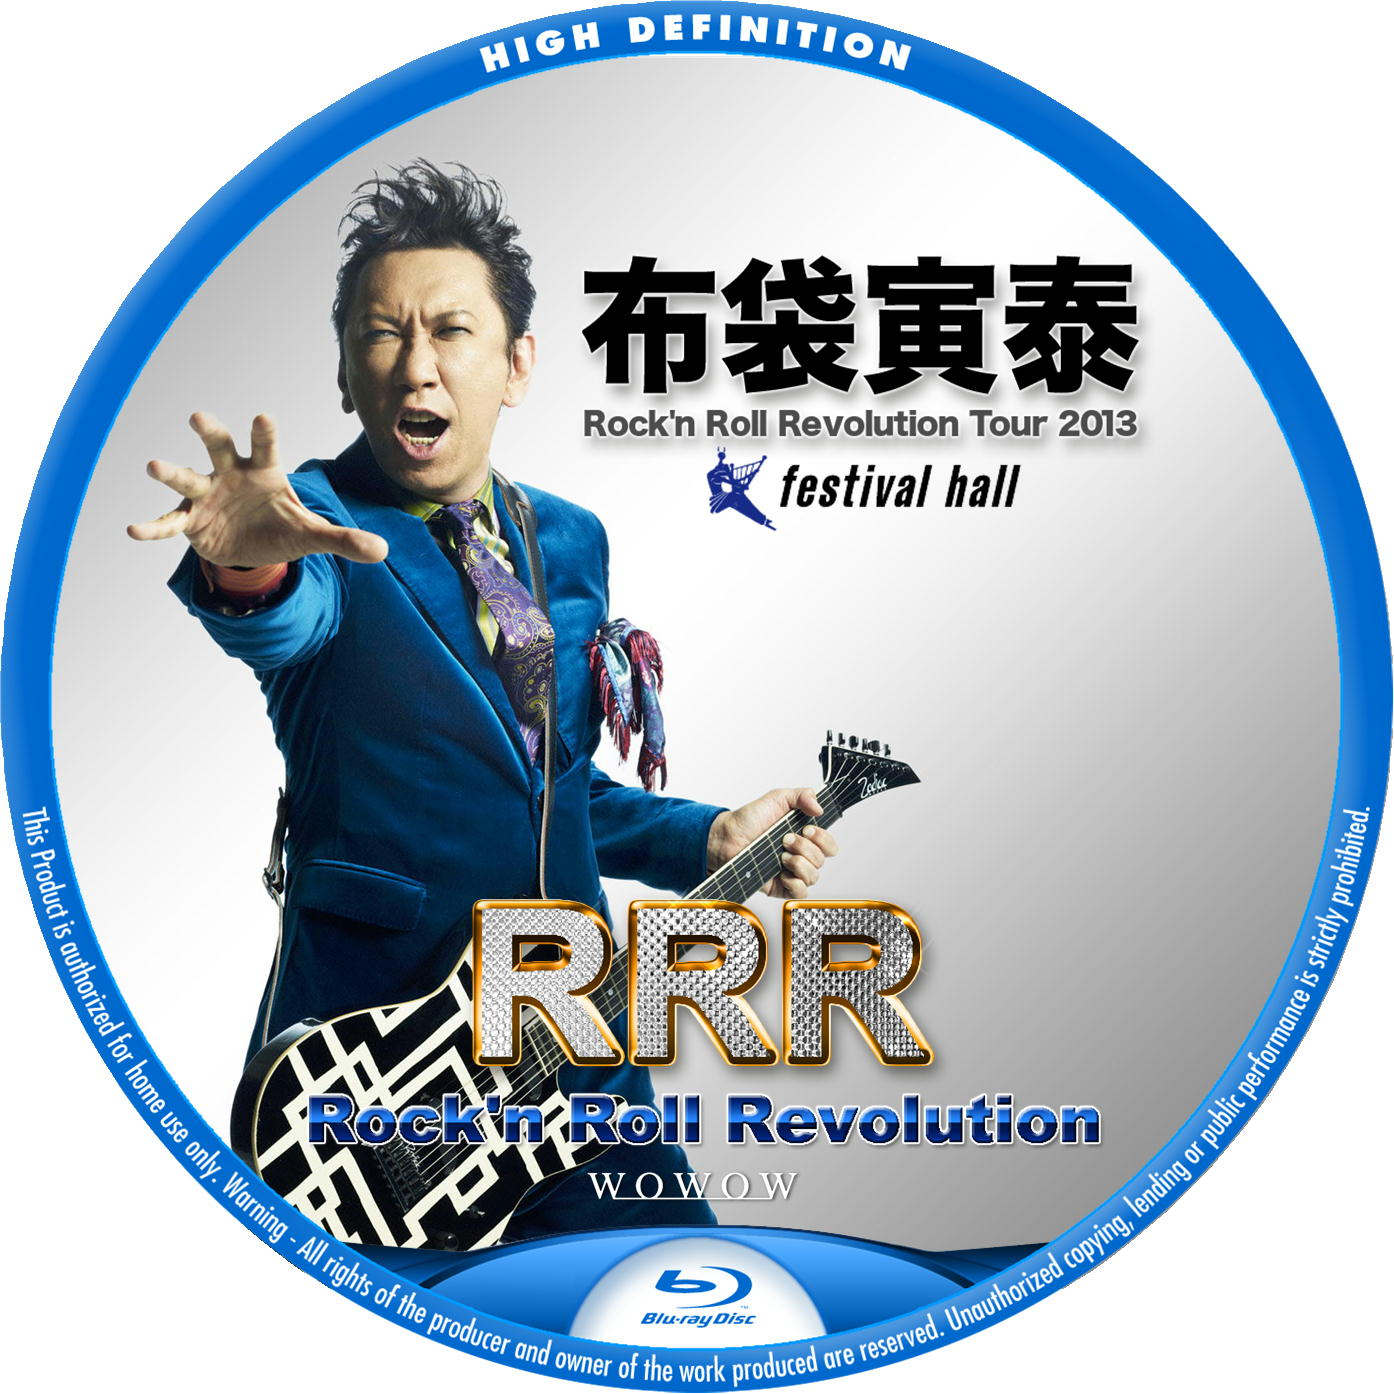 http://label.100minus8.net/wp-content/uploads/sites/3/2013/05/Hotei-BD1.jpg